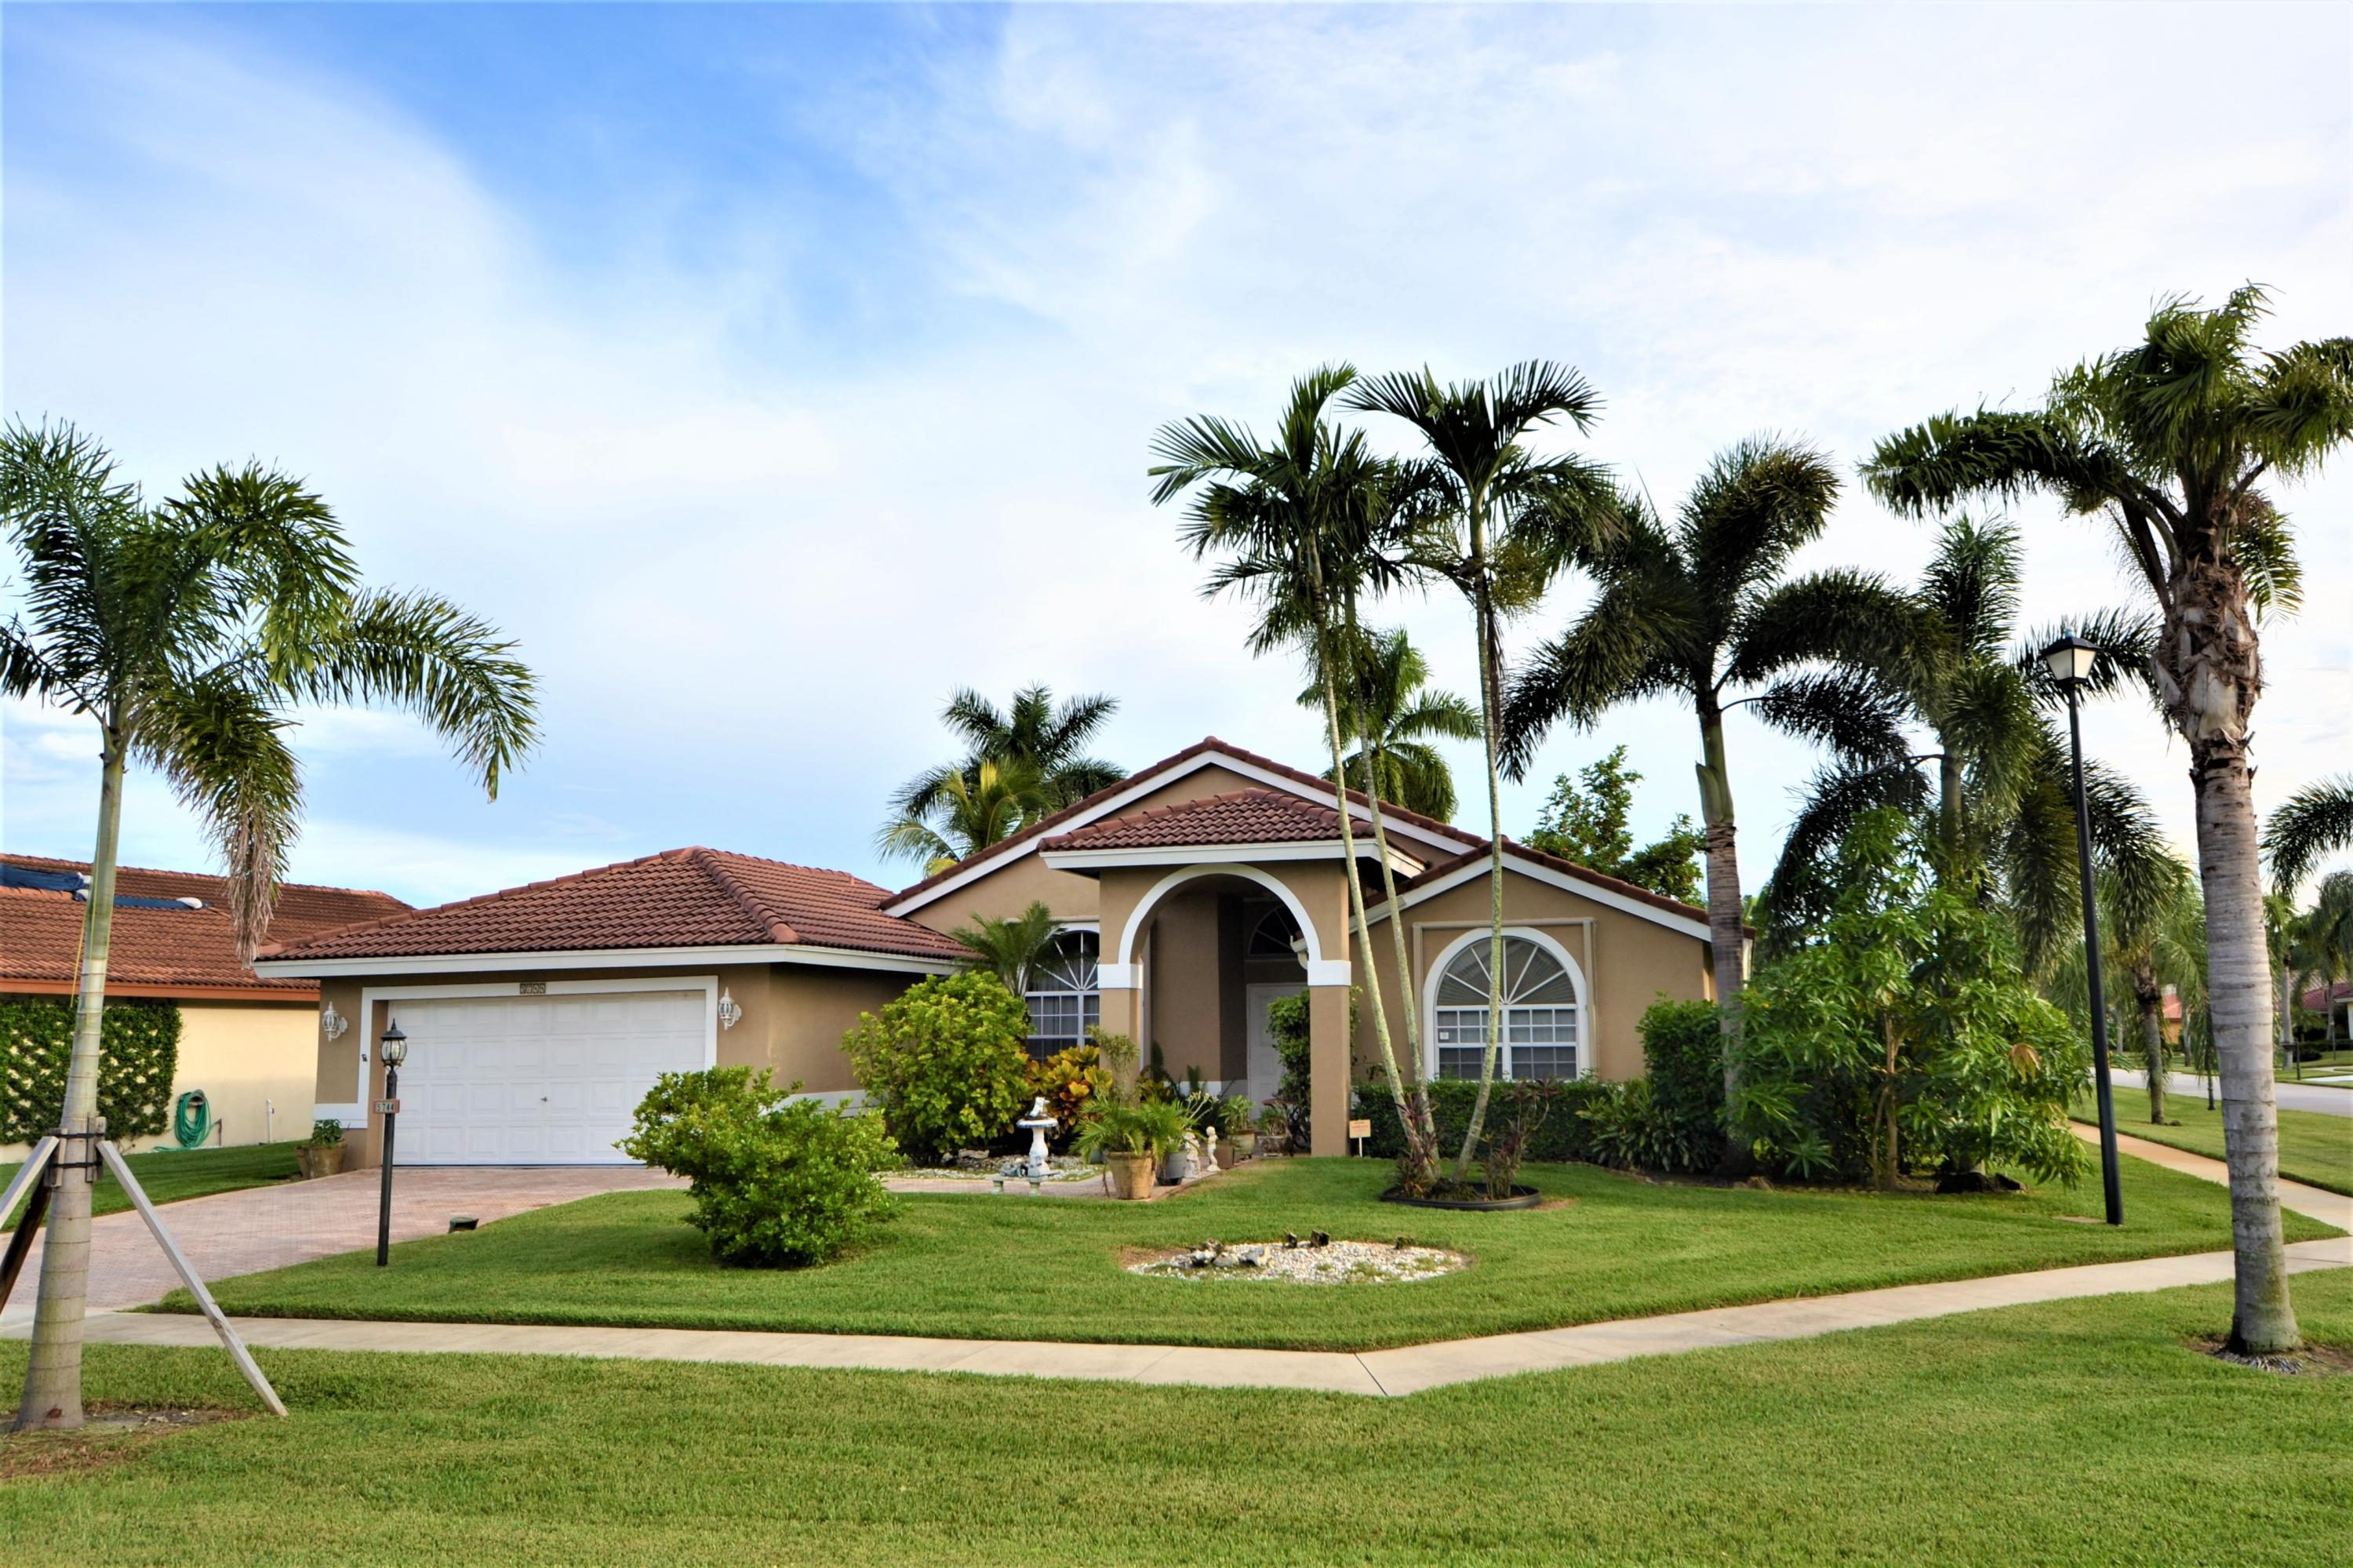 5744 Aspen Ridge Court  Delray Beach, FL 33484